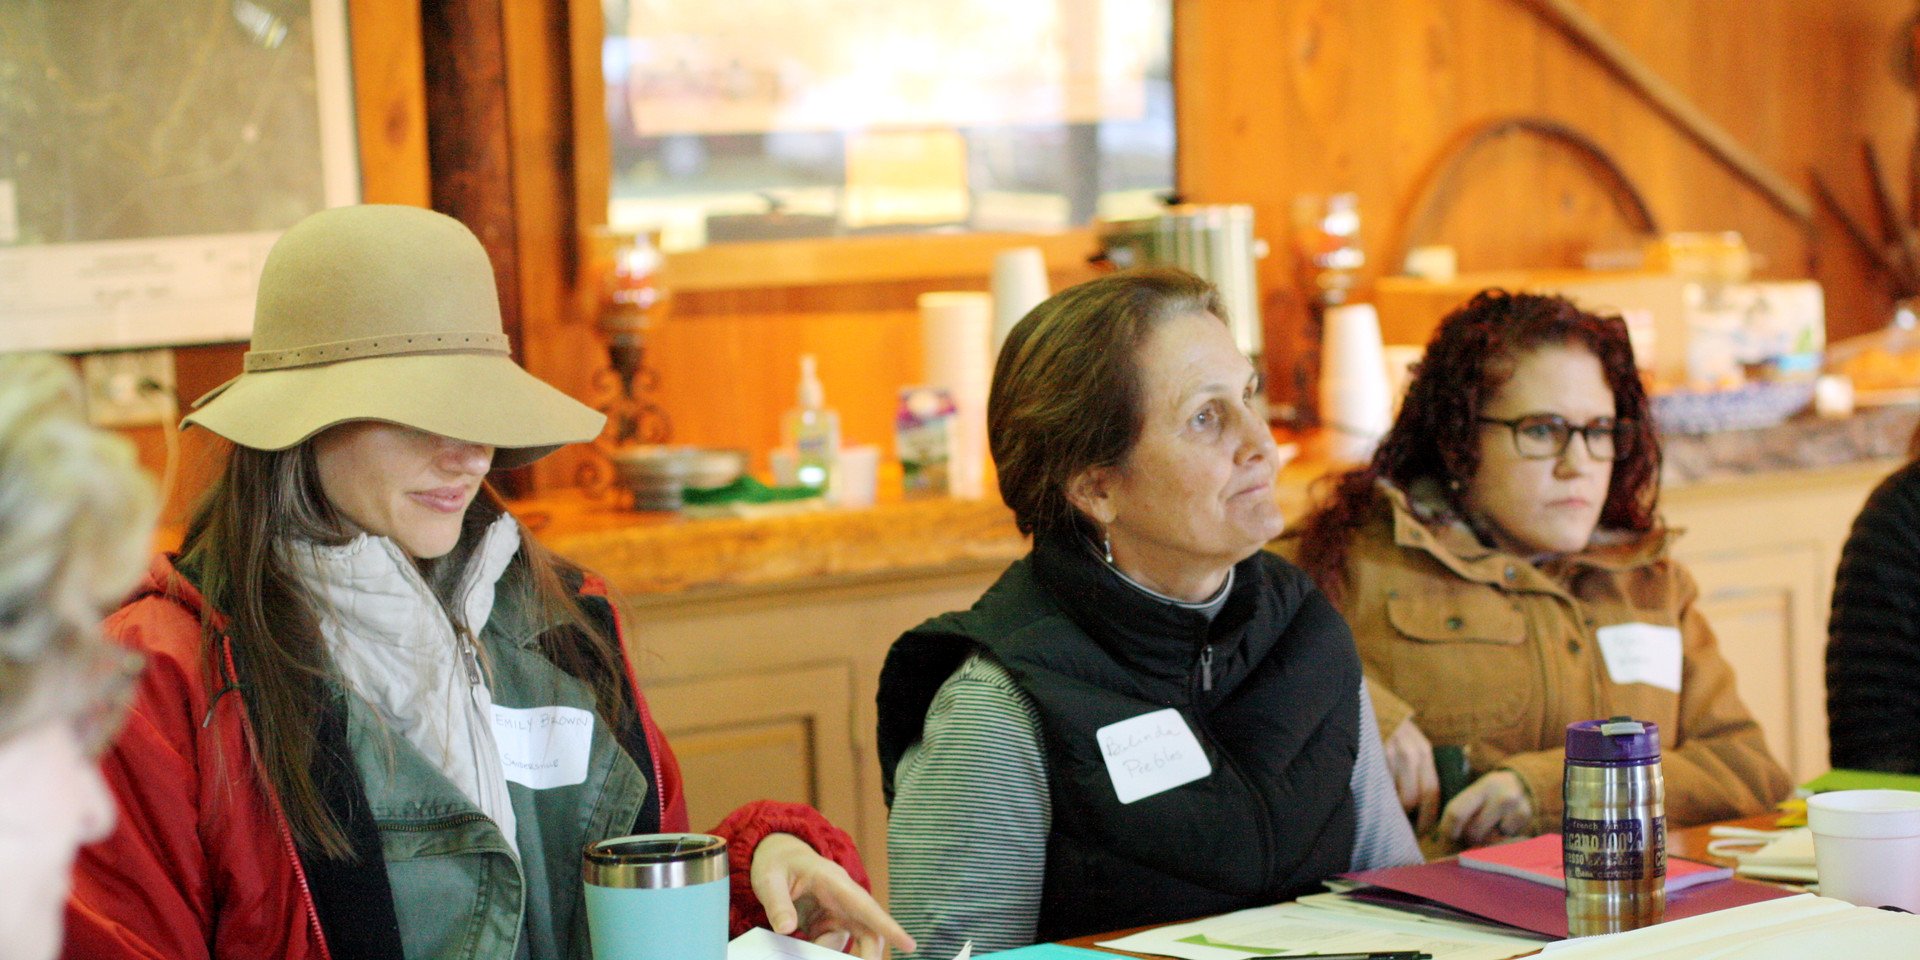 First Land & Ladies workshop for 2020 held at Tooholley Farm in Oliver, Georgia.